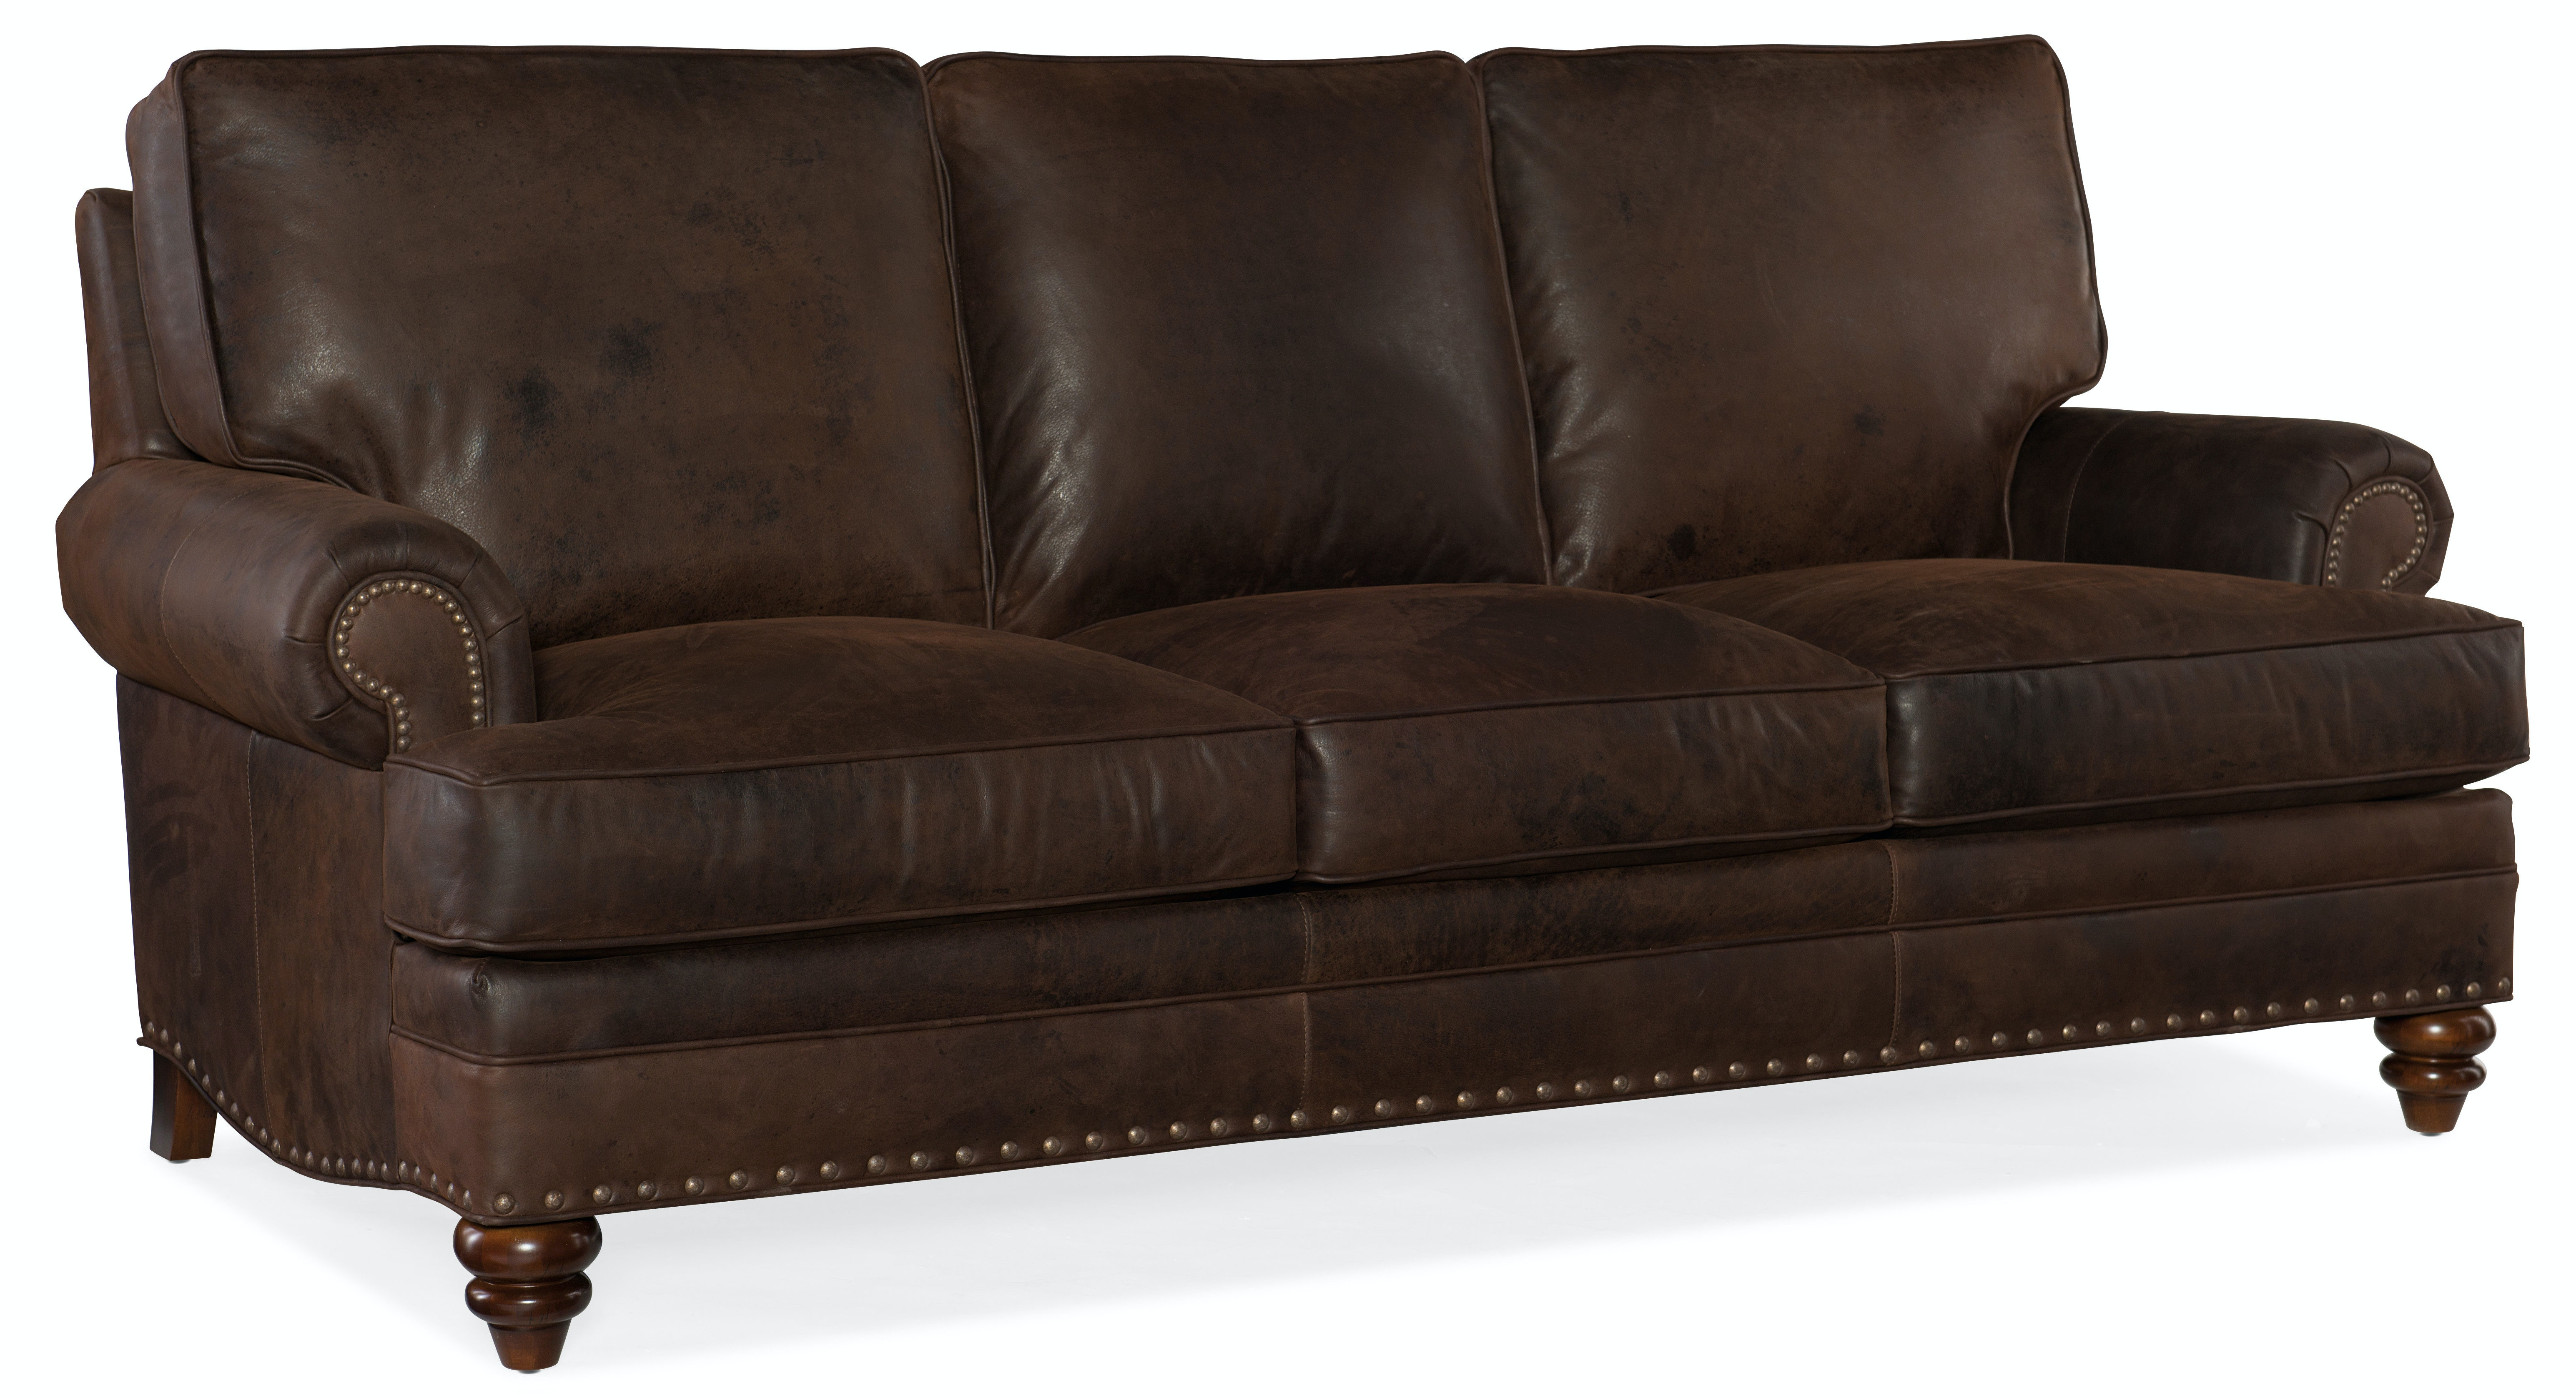 Bradington Young Carrado Stationary Sofa 8 Way Tie 780 95